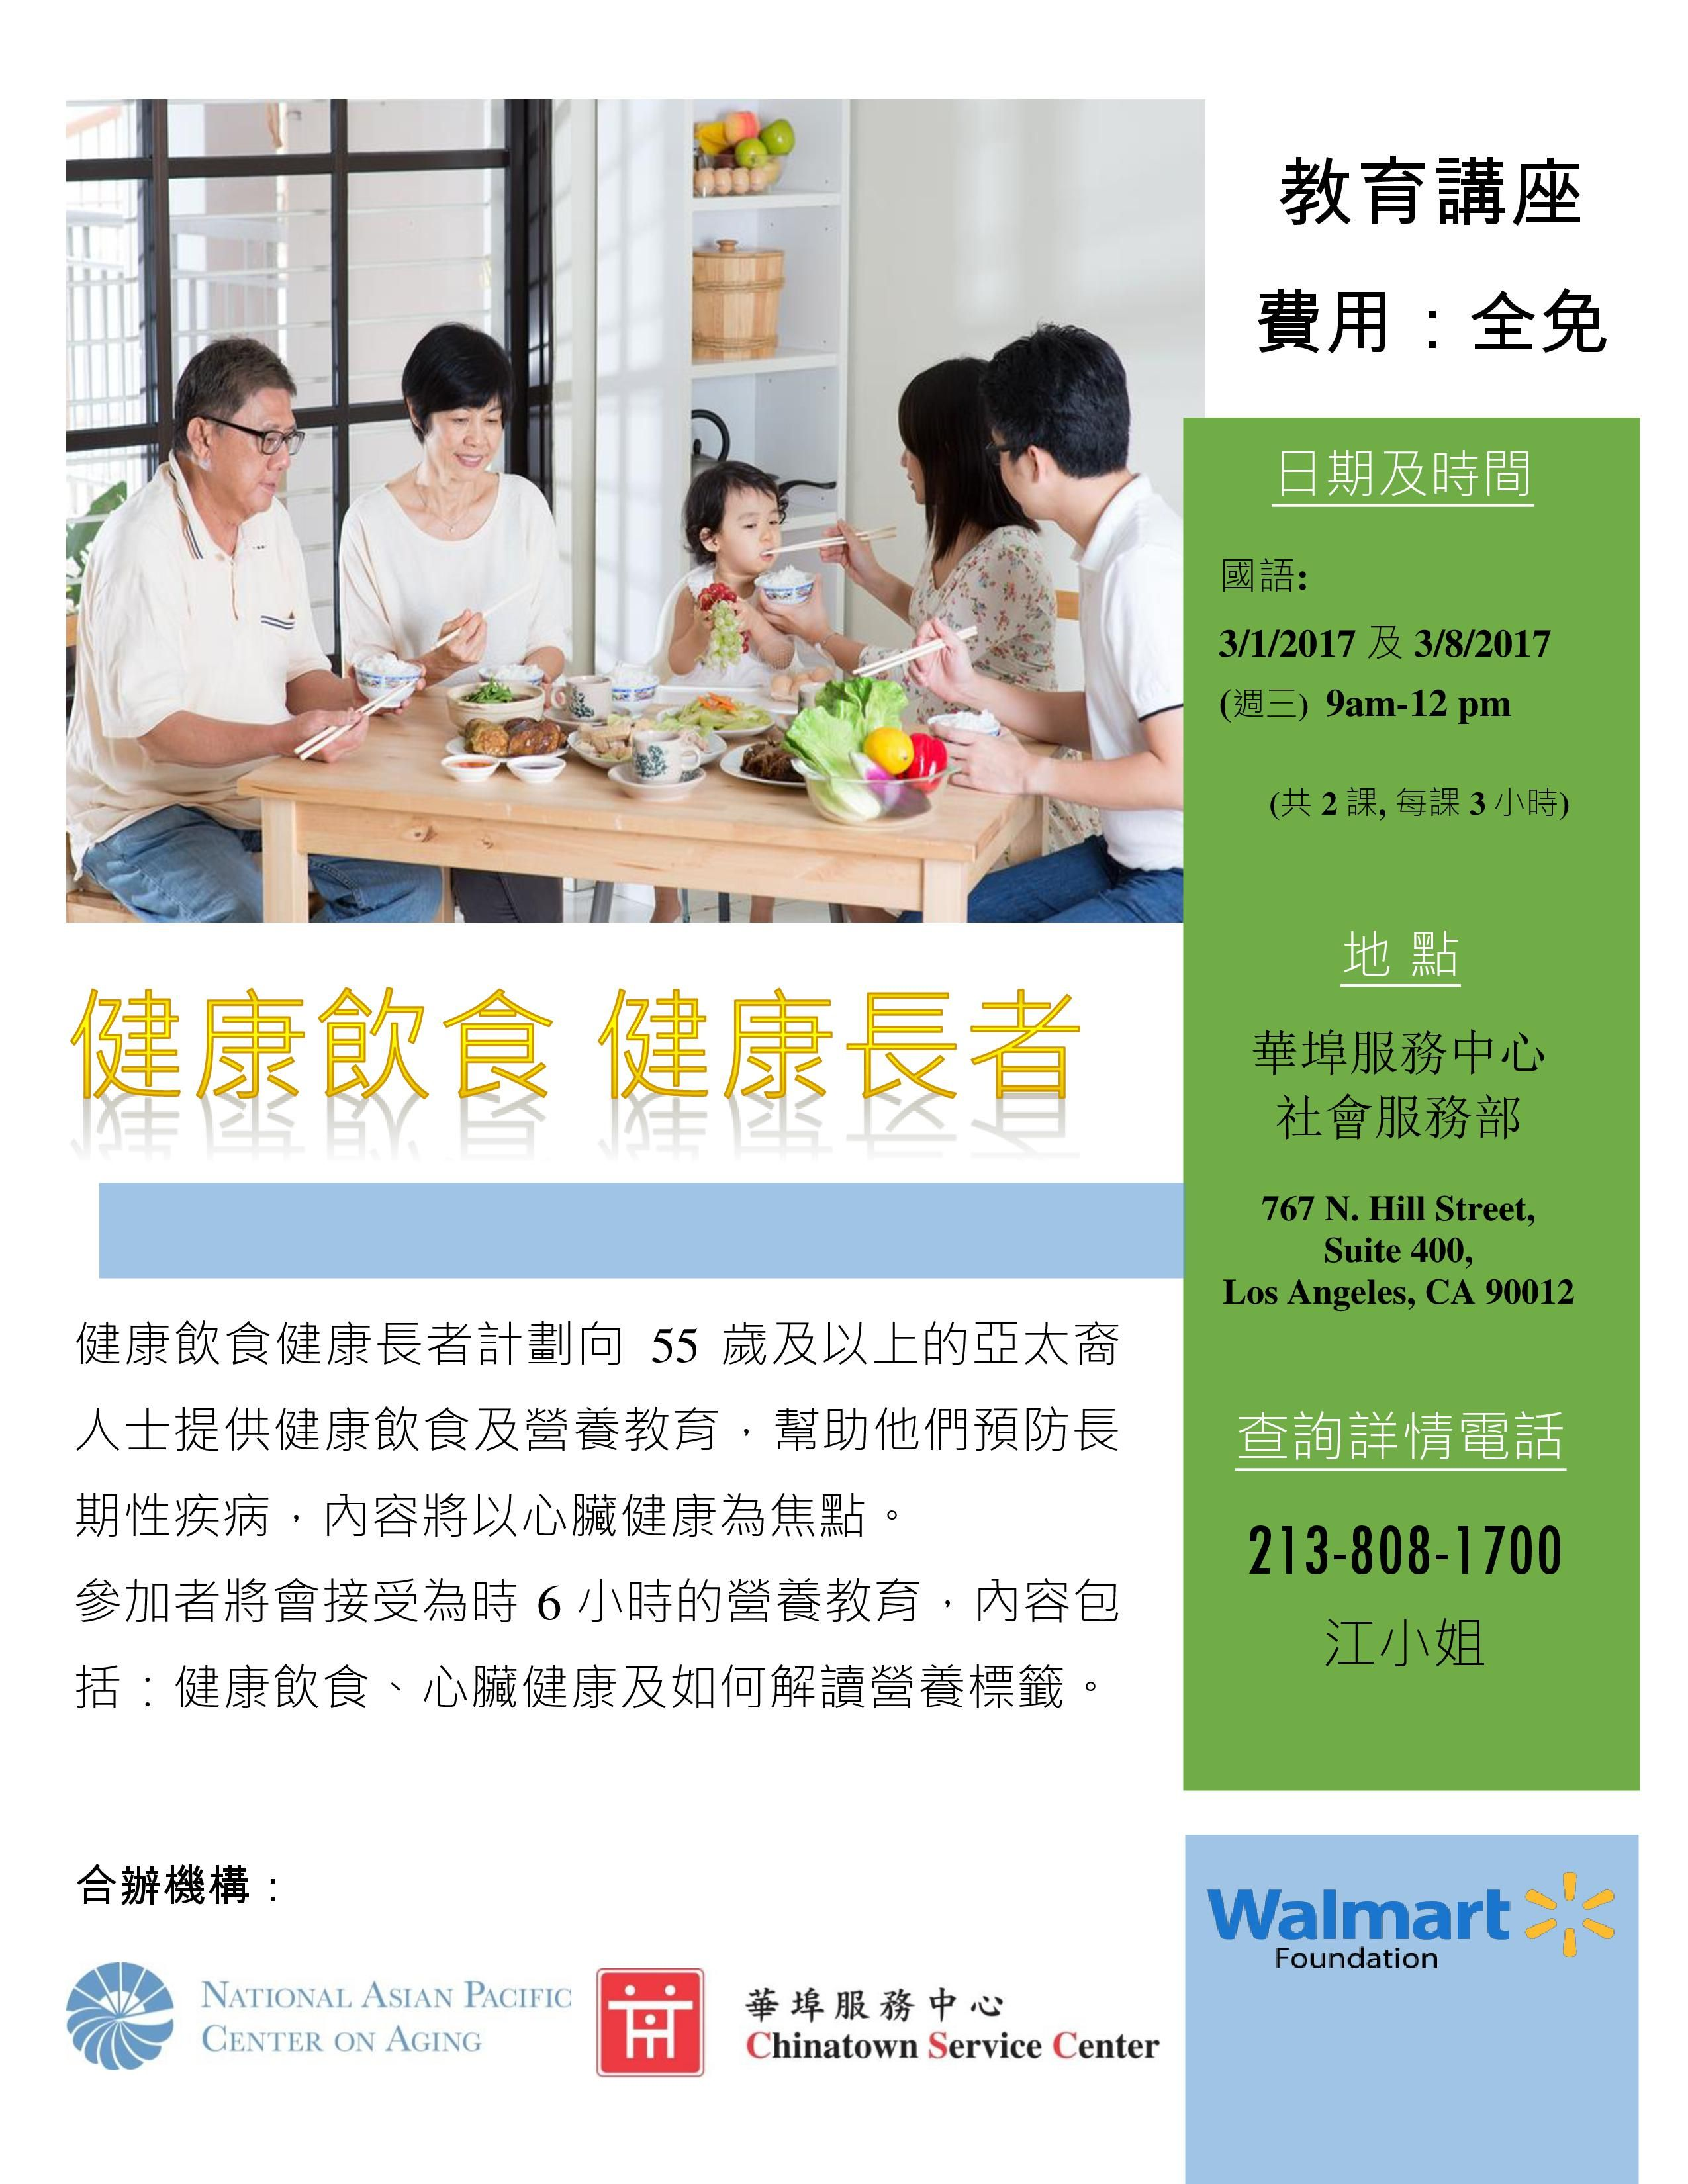 Pin by Chinatown Service Center on FREE SOCIAL SERVICES 華埠